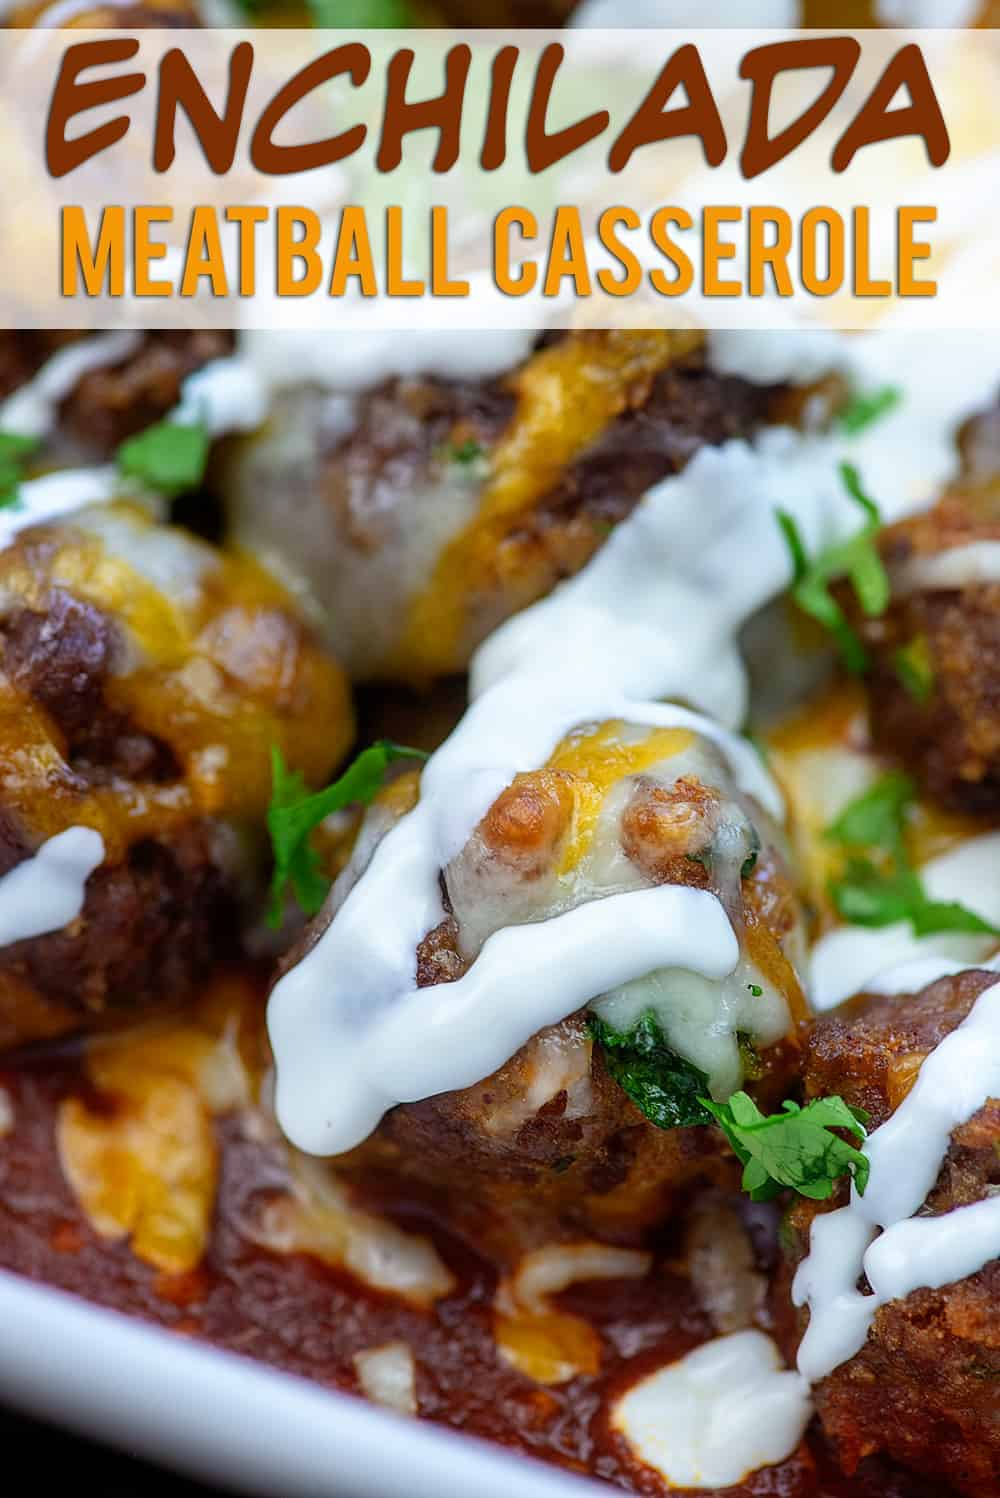 meatballs with sour cream drizzled on it